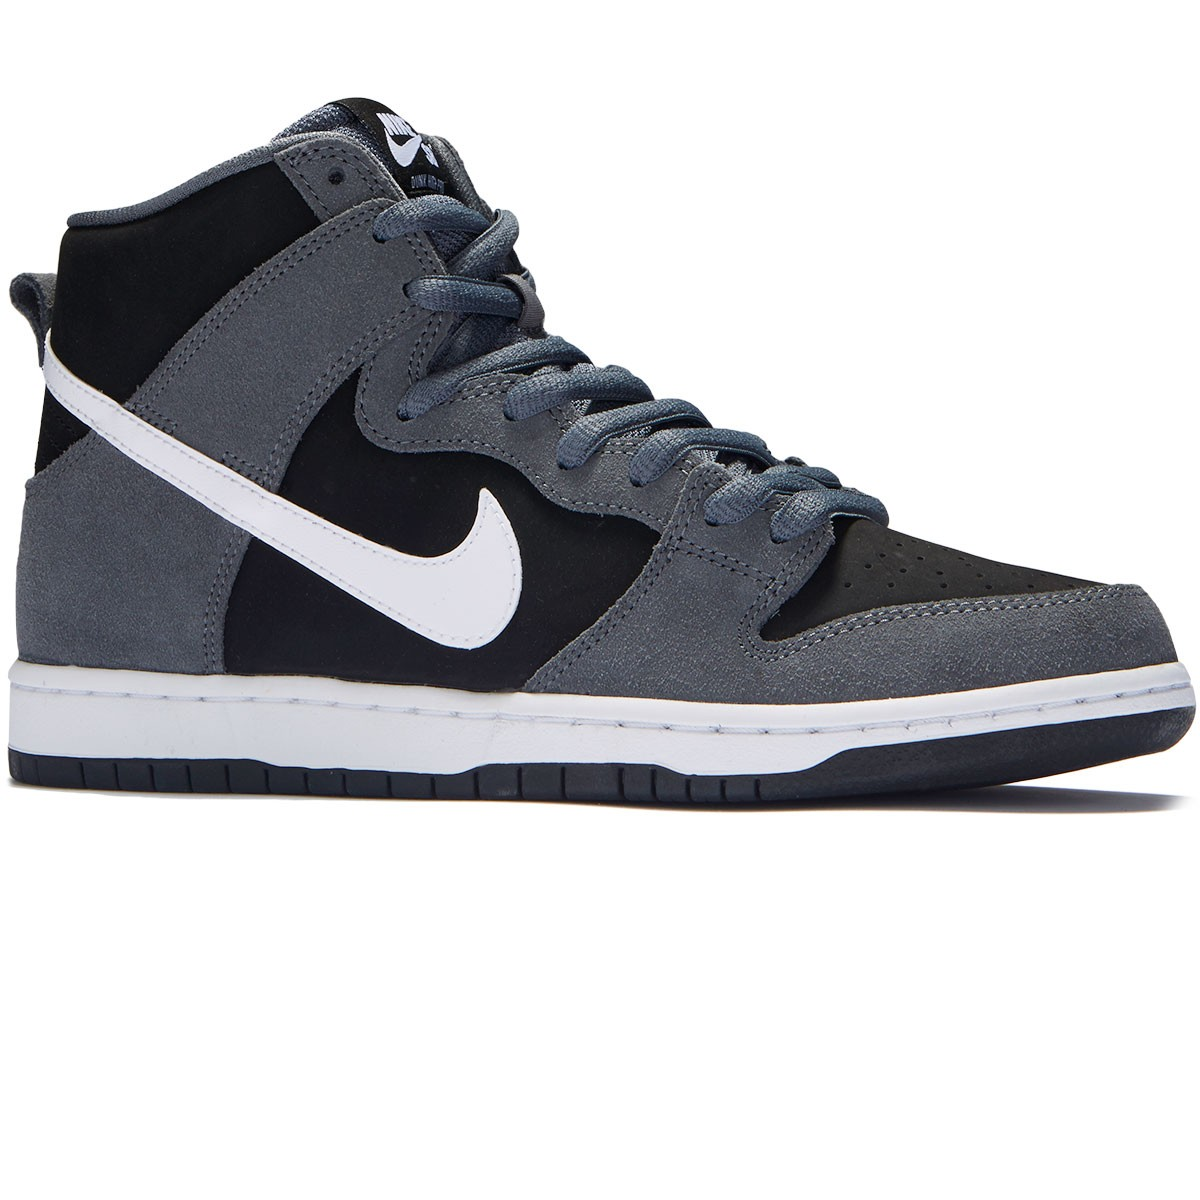 6eb1868ebce15 Nike Dunk High Pro SB Shoes - Black/Black/Red - 10